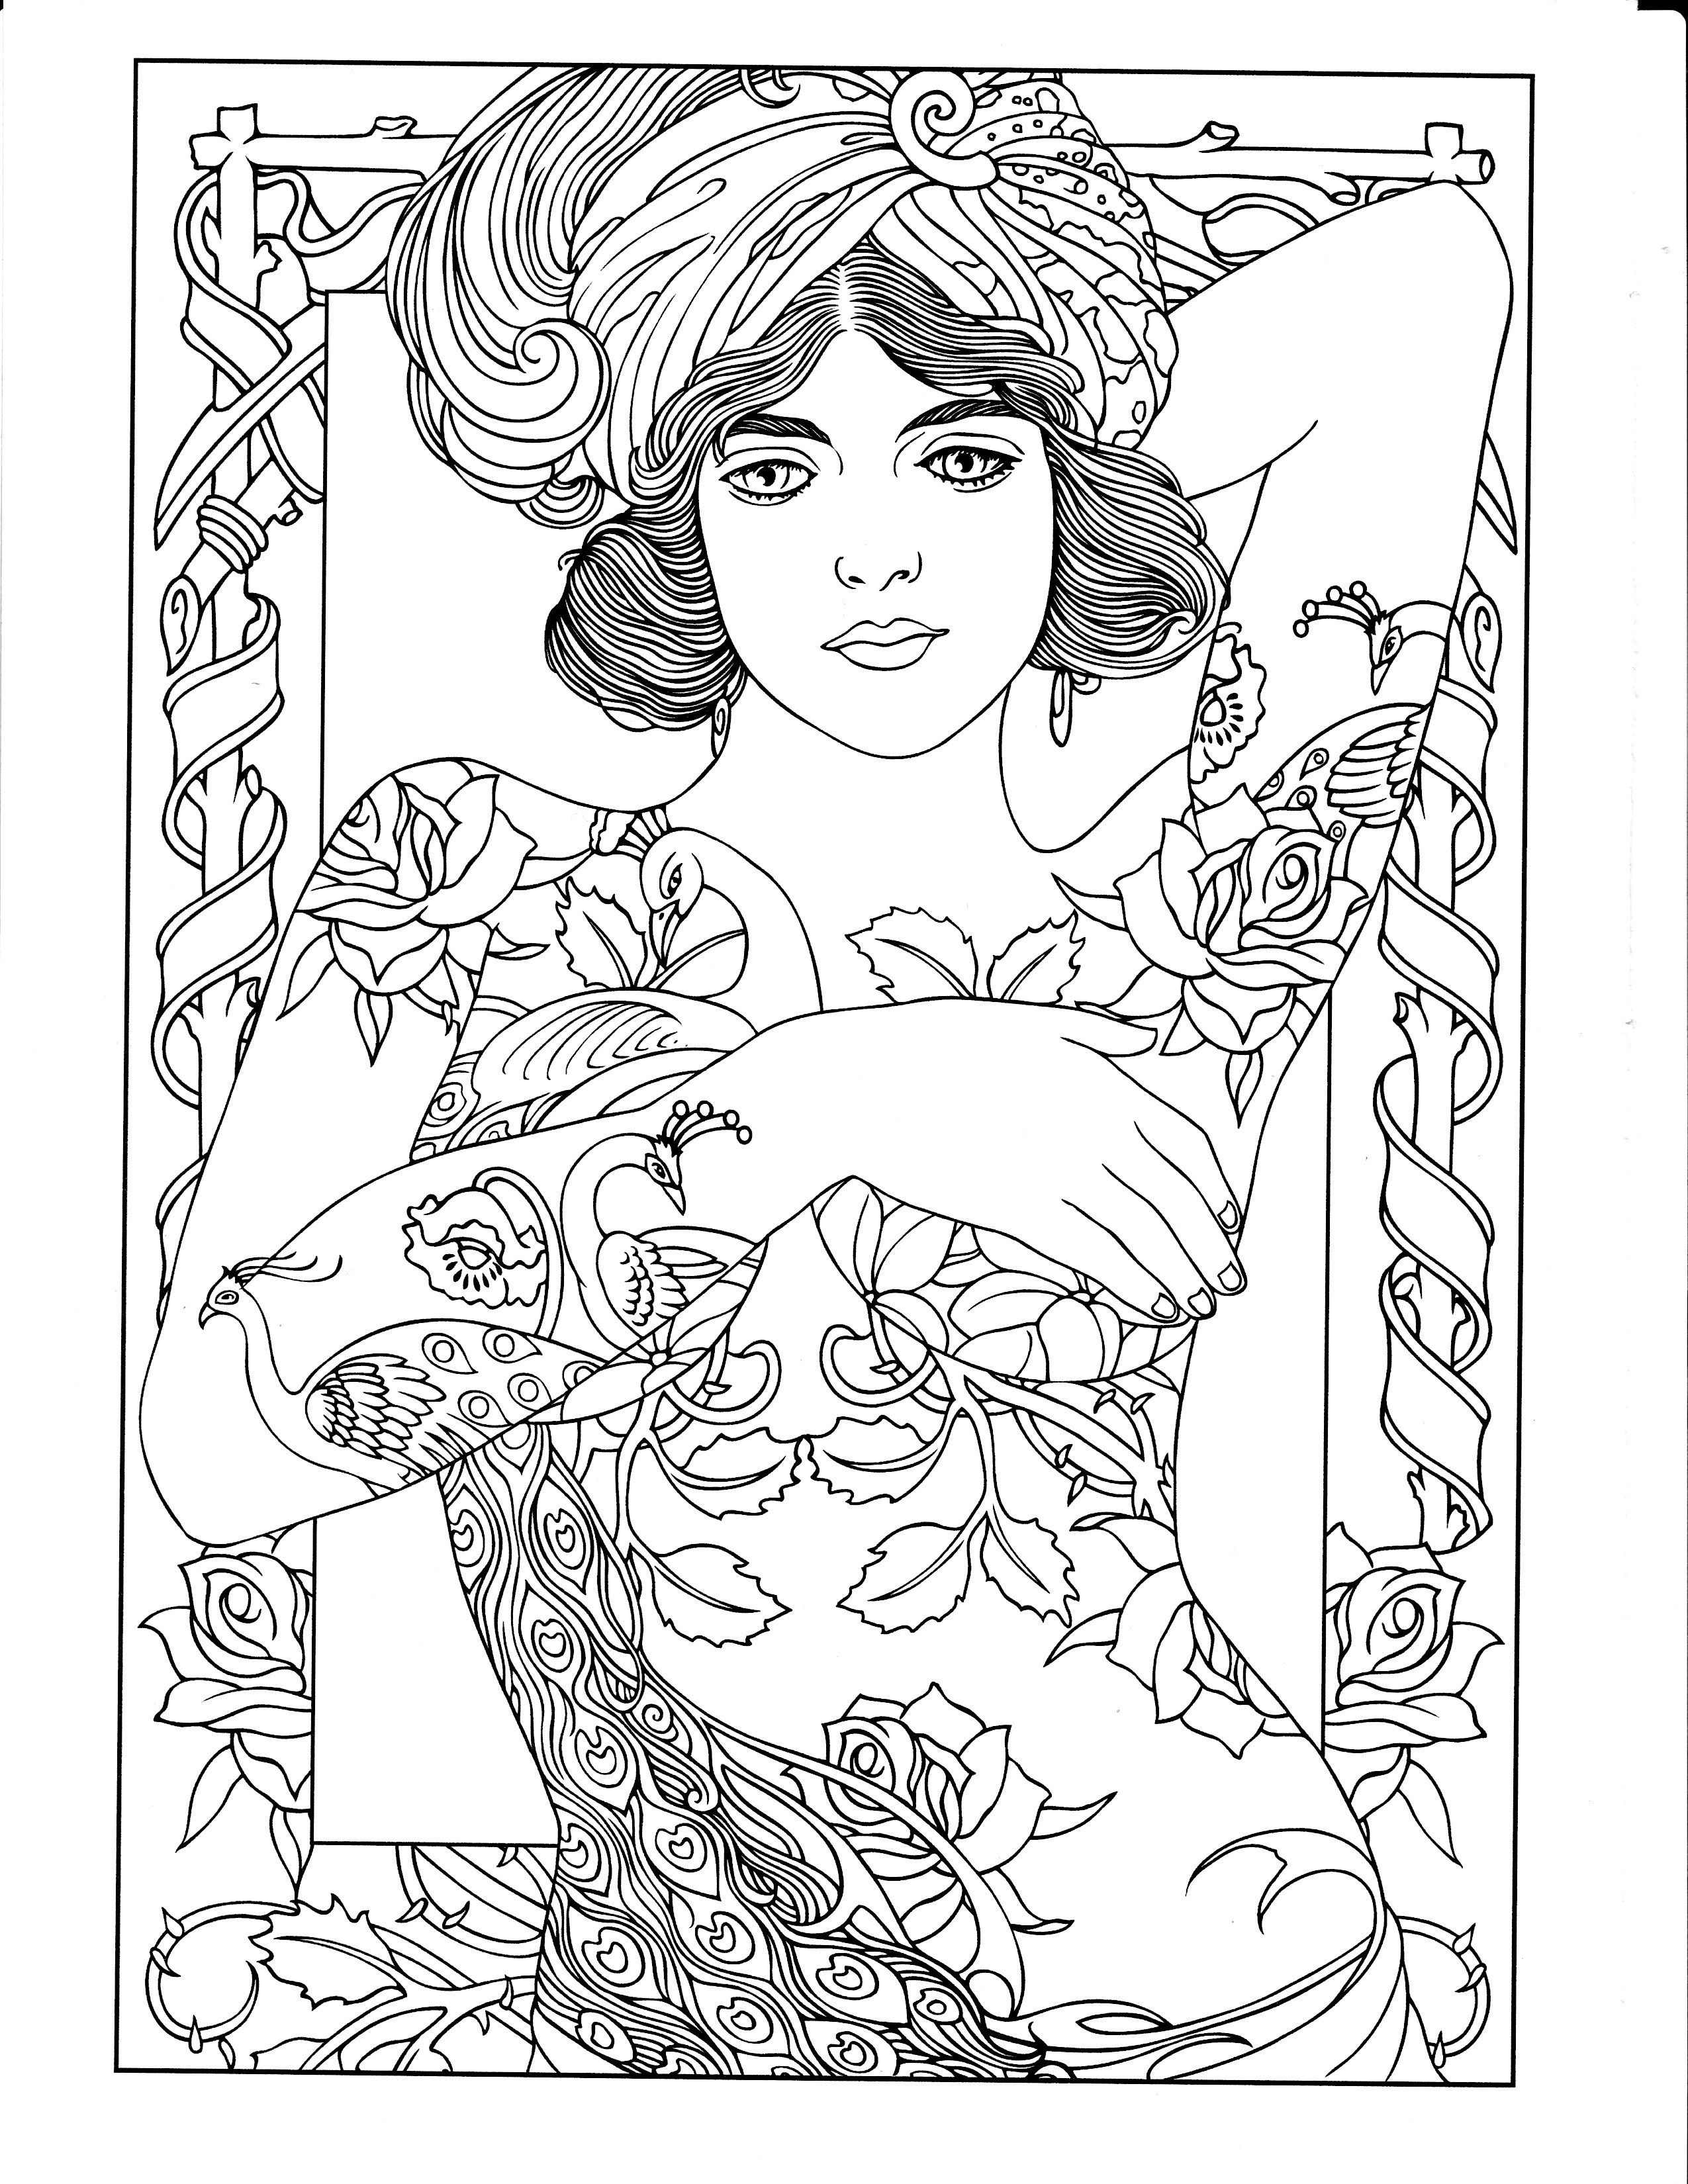 Pin on body art coloring pages